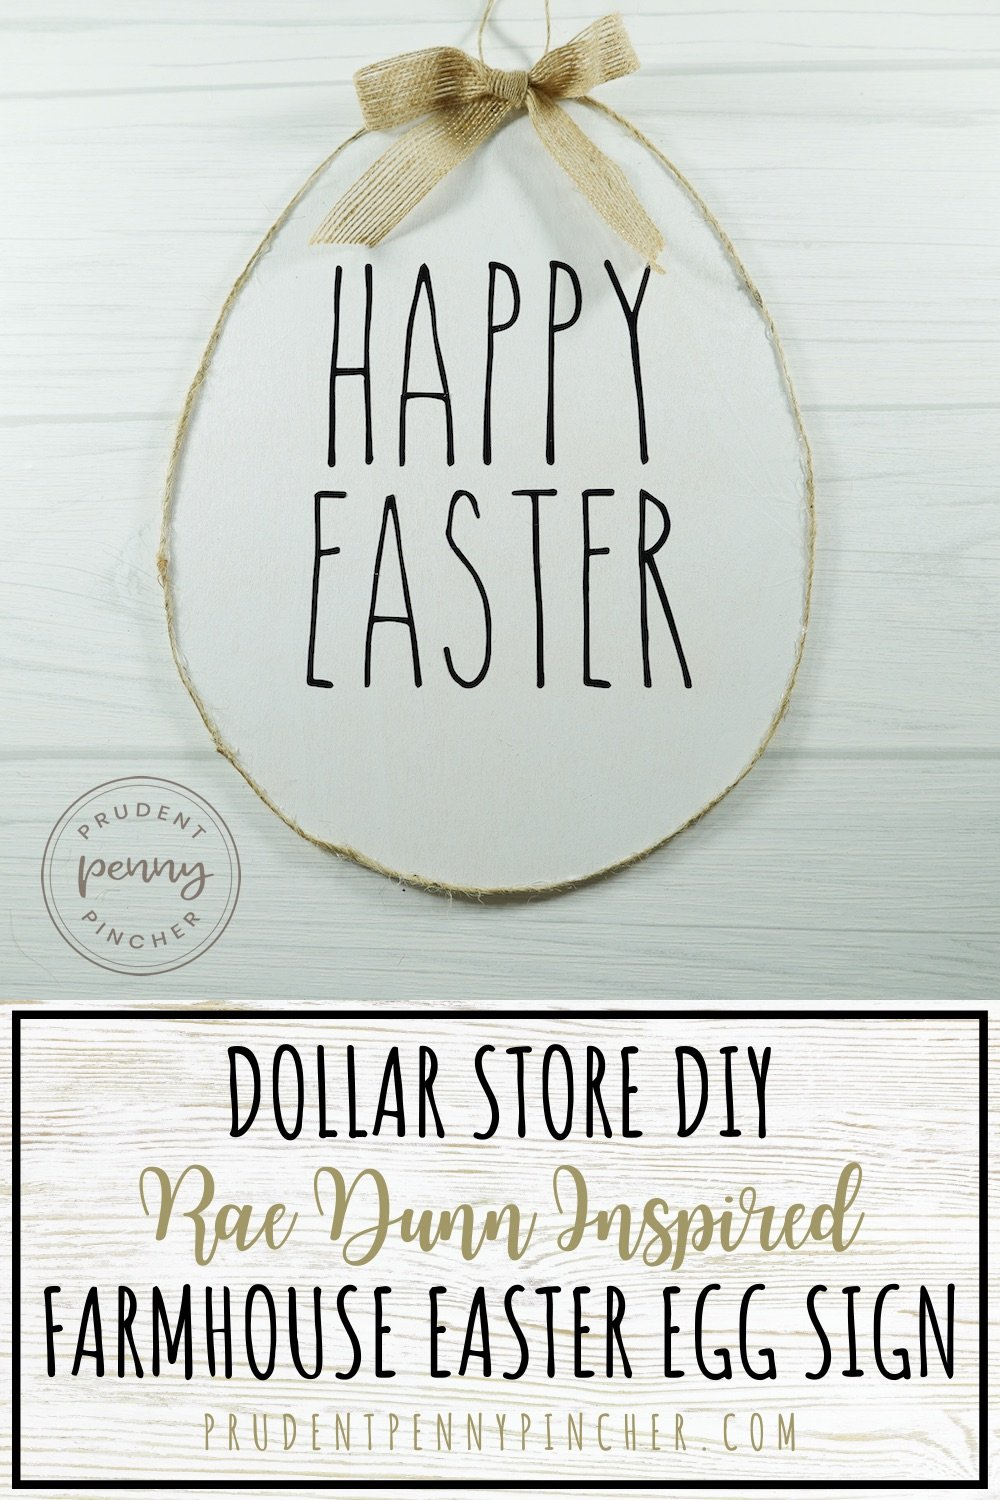 Dollar Store DIY Farmhouse Easter Sign